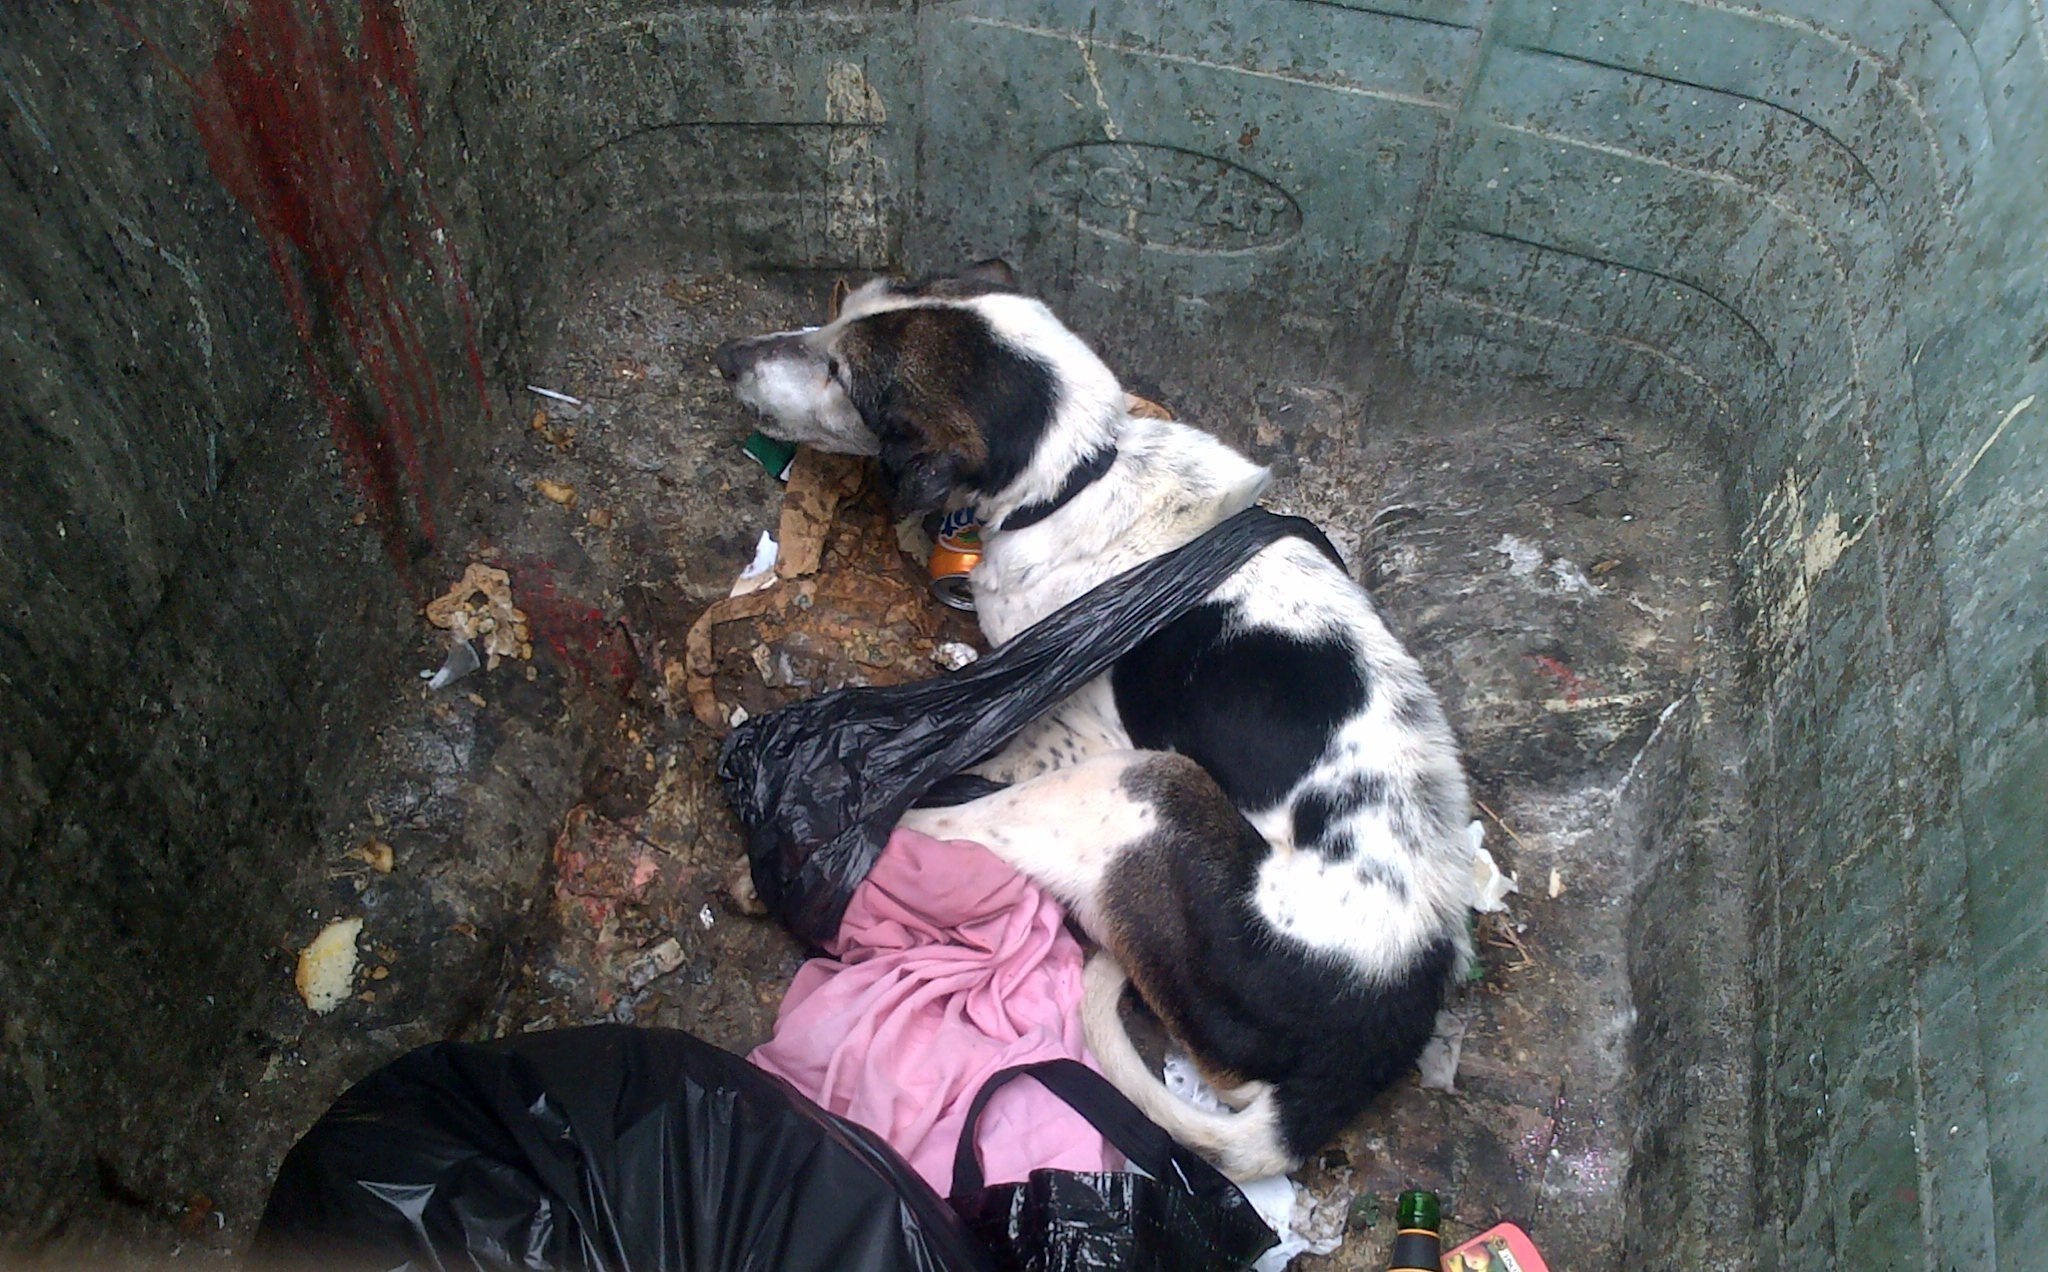 The dog was found alive but later had to be put down